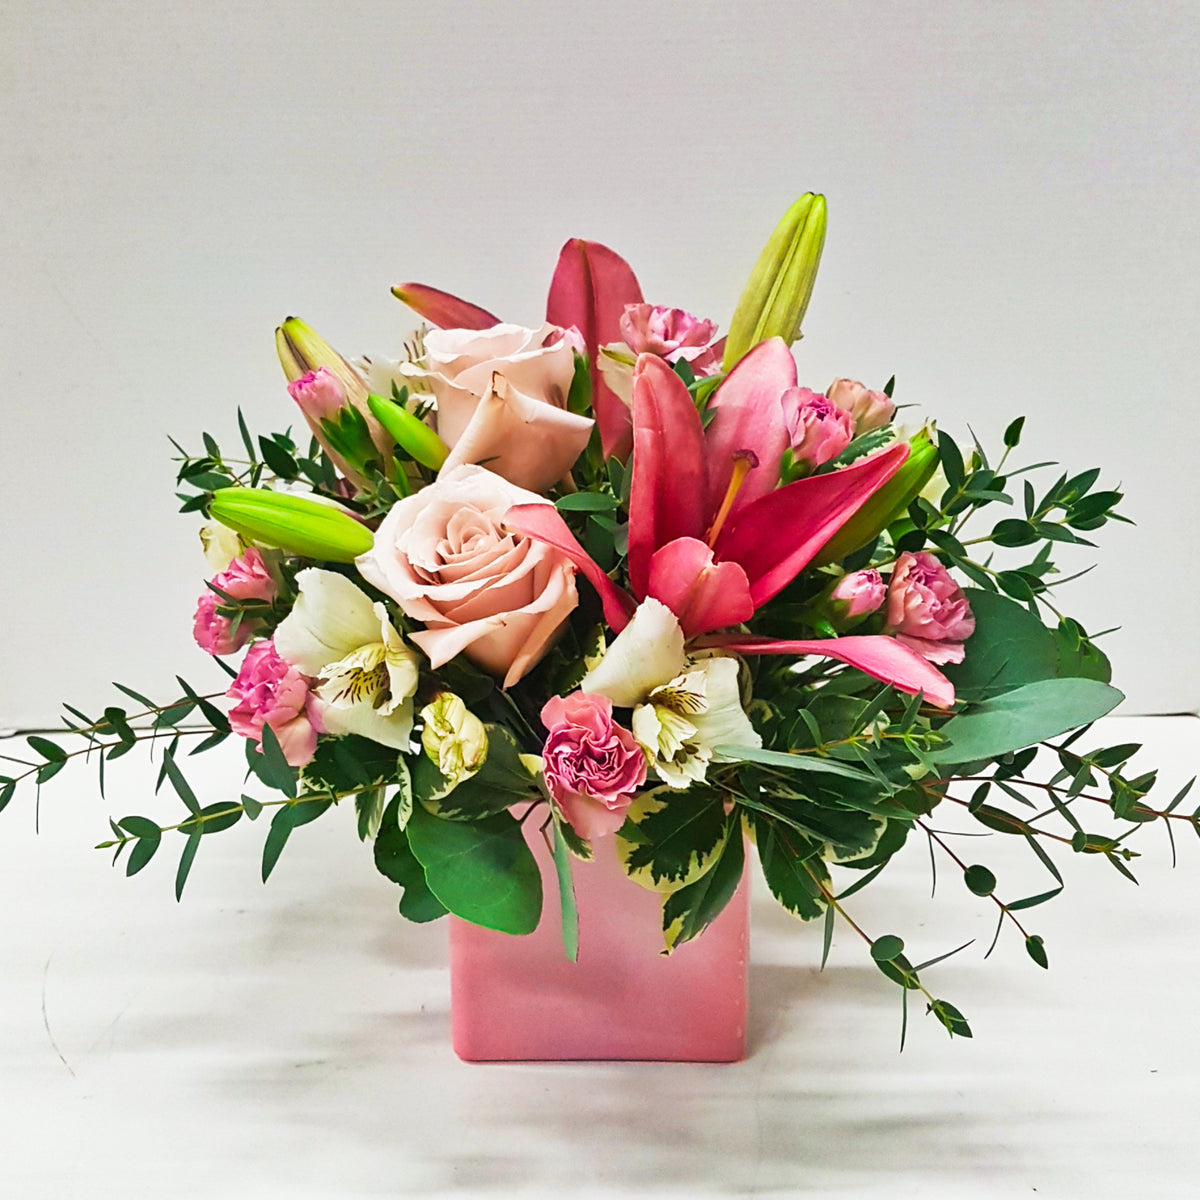 Lilies, roses, carnations, alstroemeria, cube vase - all pink flowers in this cube arrangement.  Edmonton flowers, order flowers, flower delivery, valentine's day